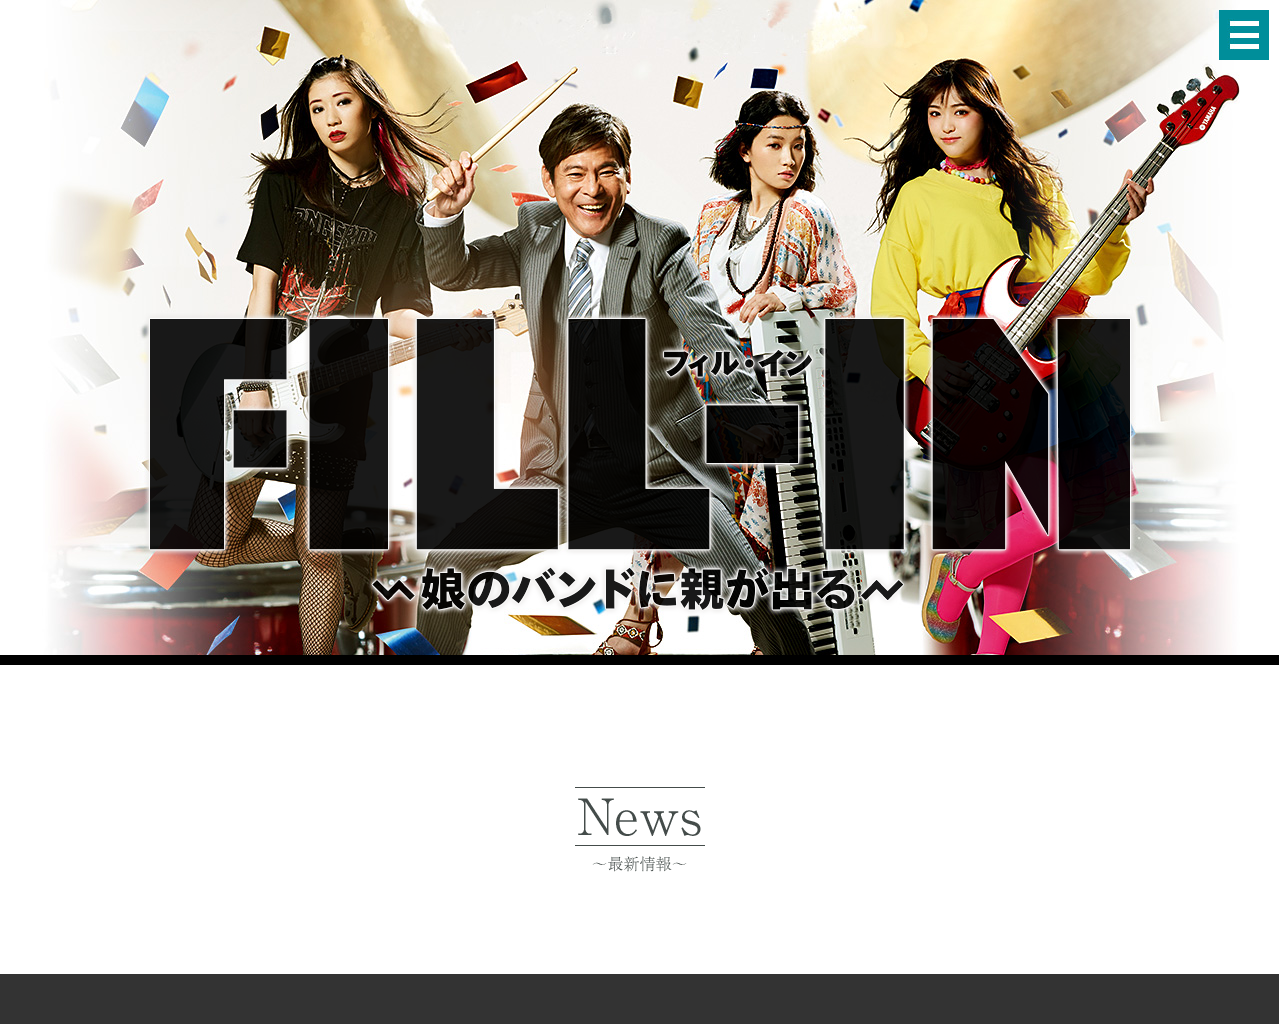 fill-in.yoshimoto.co.jp(2018/01/13 11:00:39)